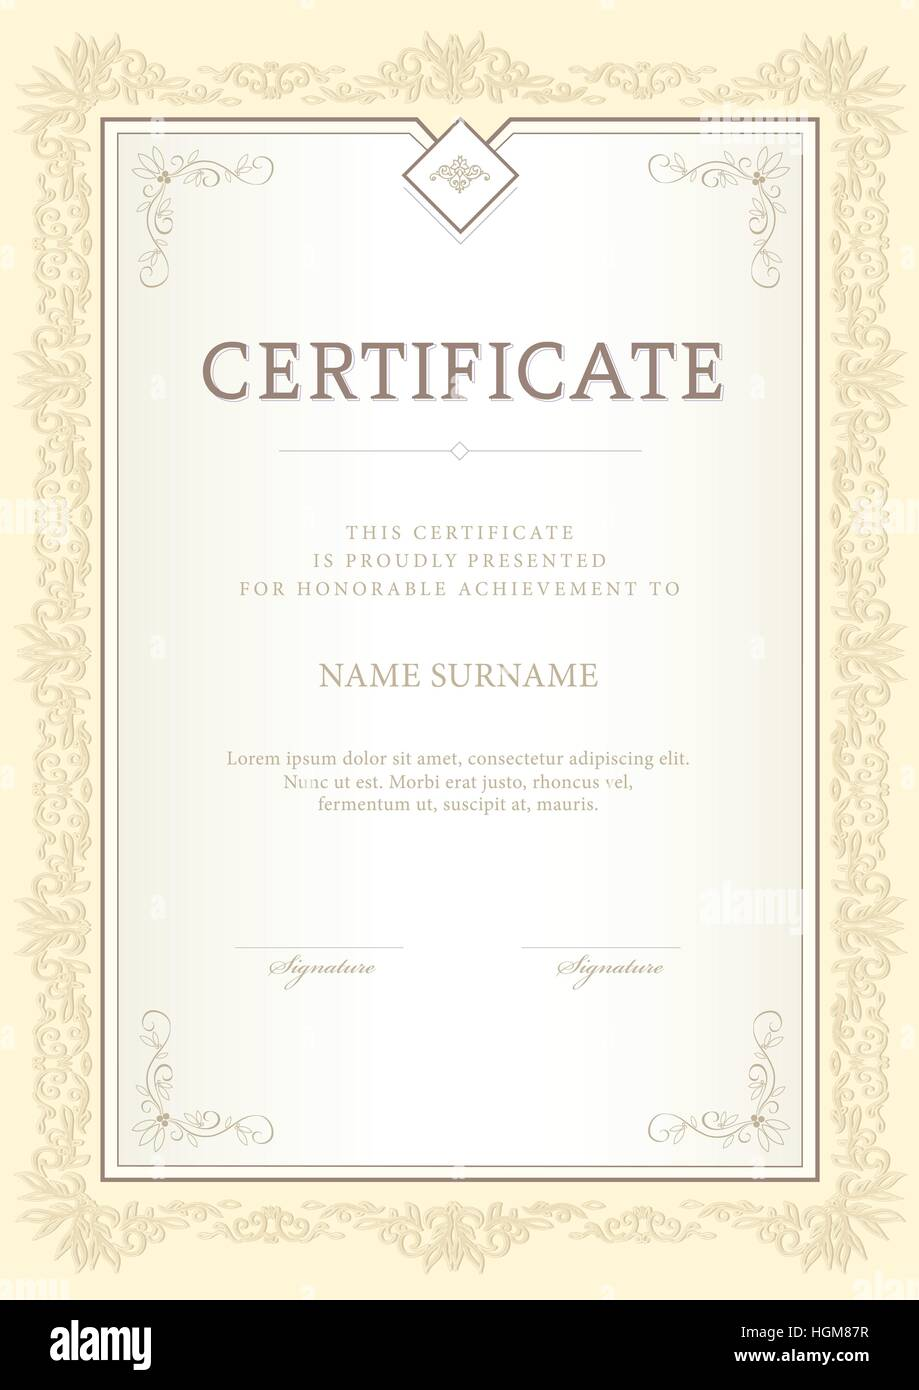 Certificate Diploma Completion Vector Design Stock Photos ...